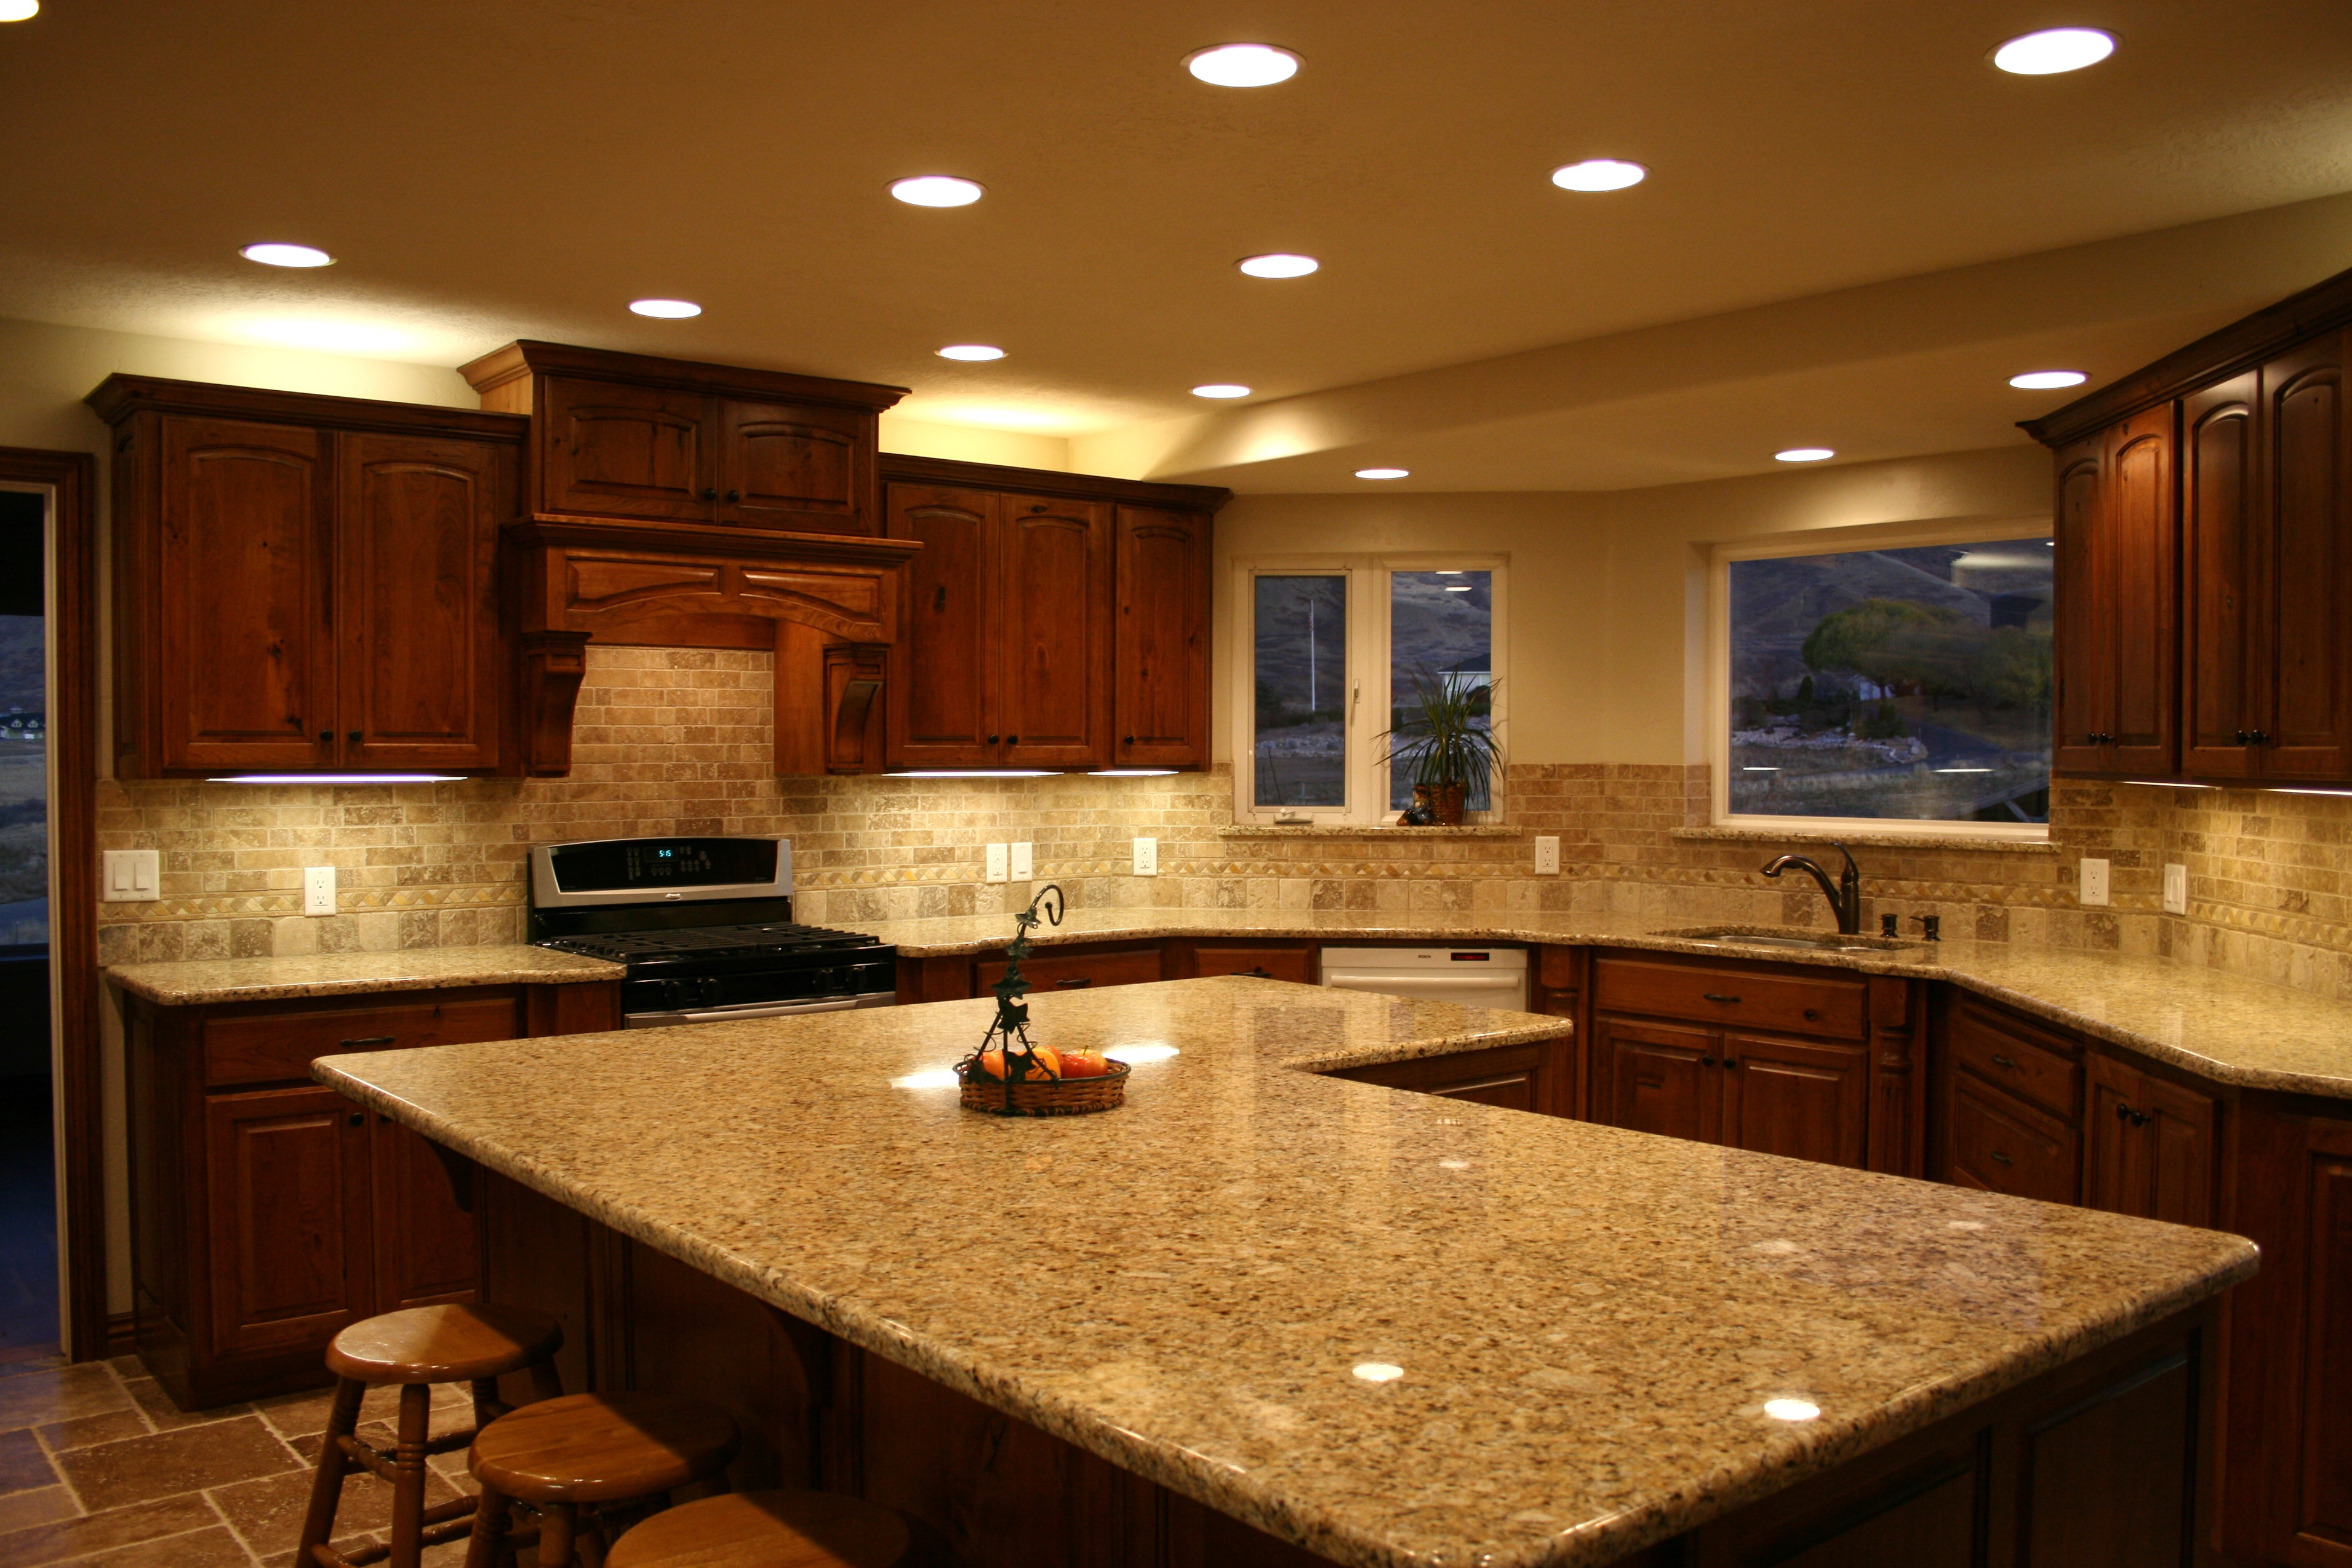 home d kitchen remodel cherry cabinetry granite countertop